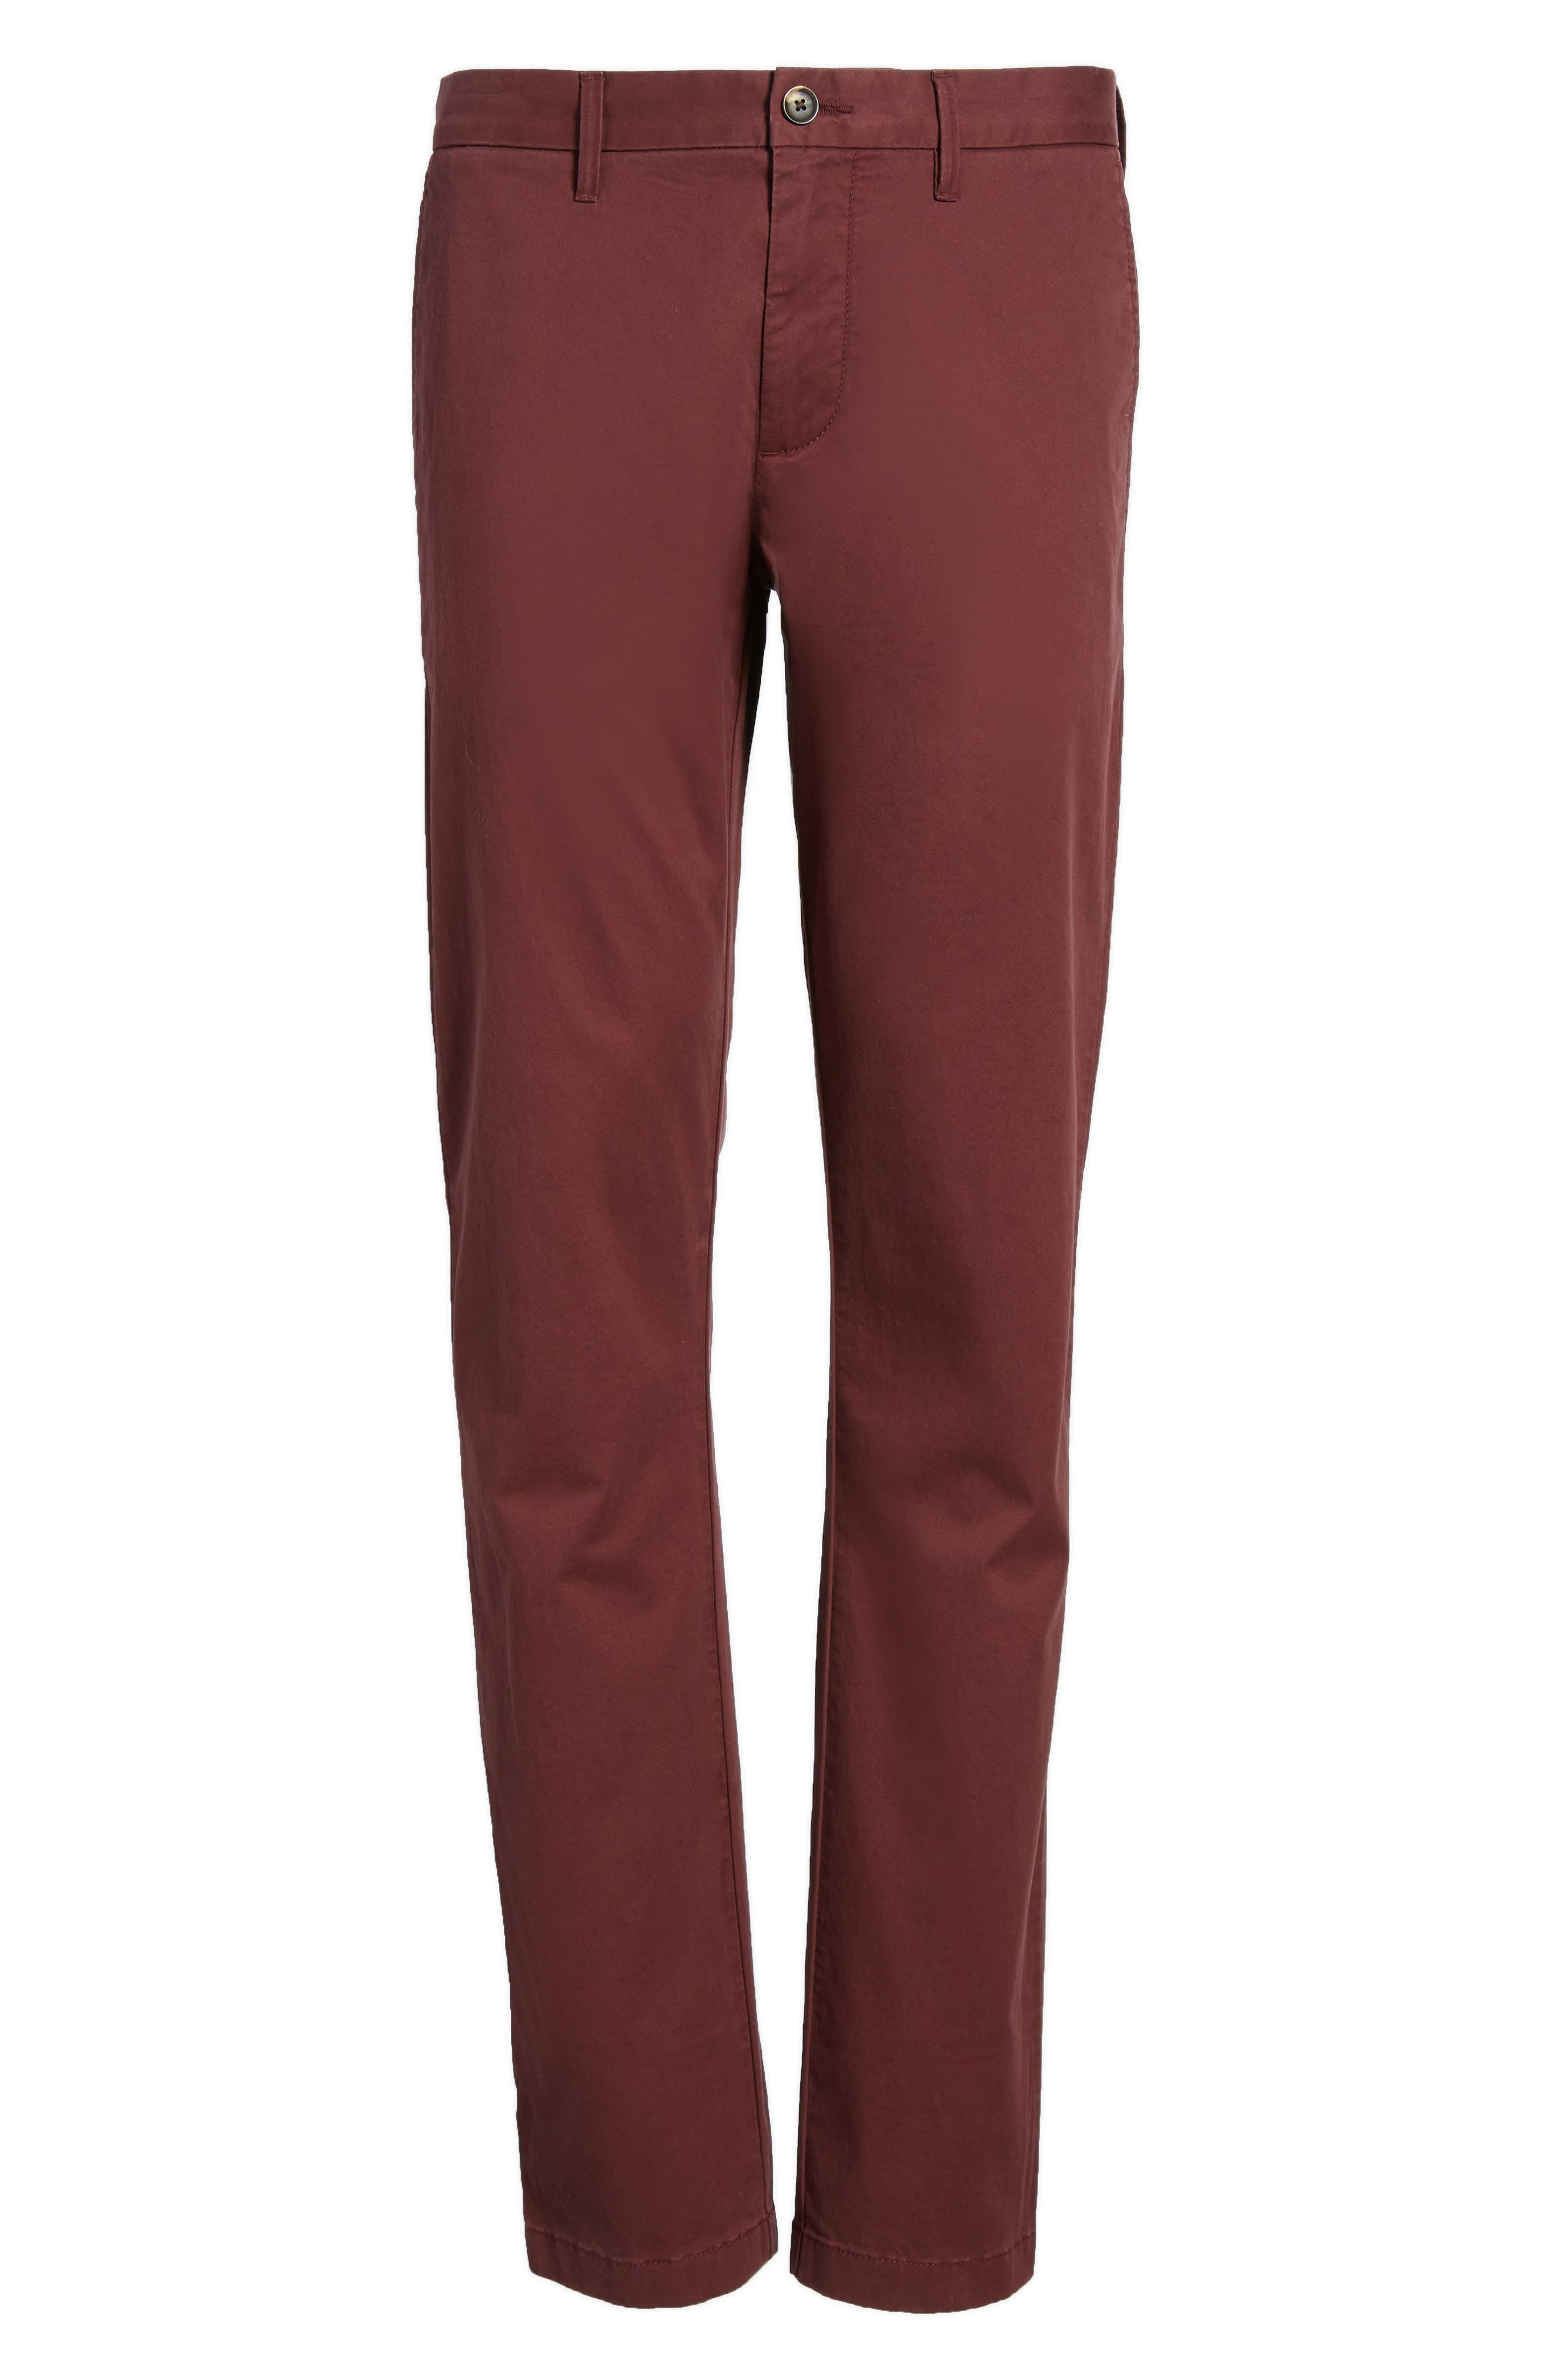 Nordstrom Men's Shop Ballard Slim Fit Stretch Chinos (Regular)